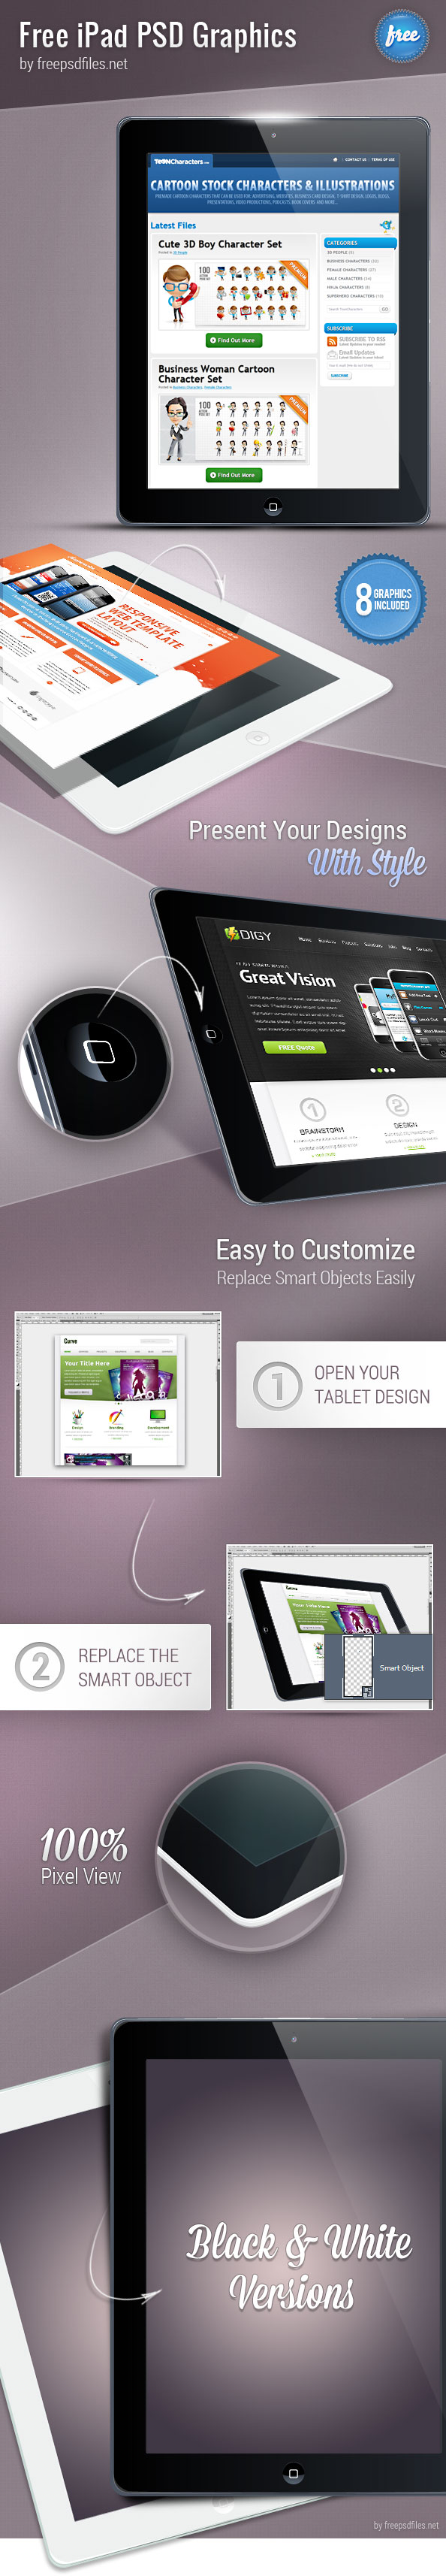 iPad PSD Graphics Preview